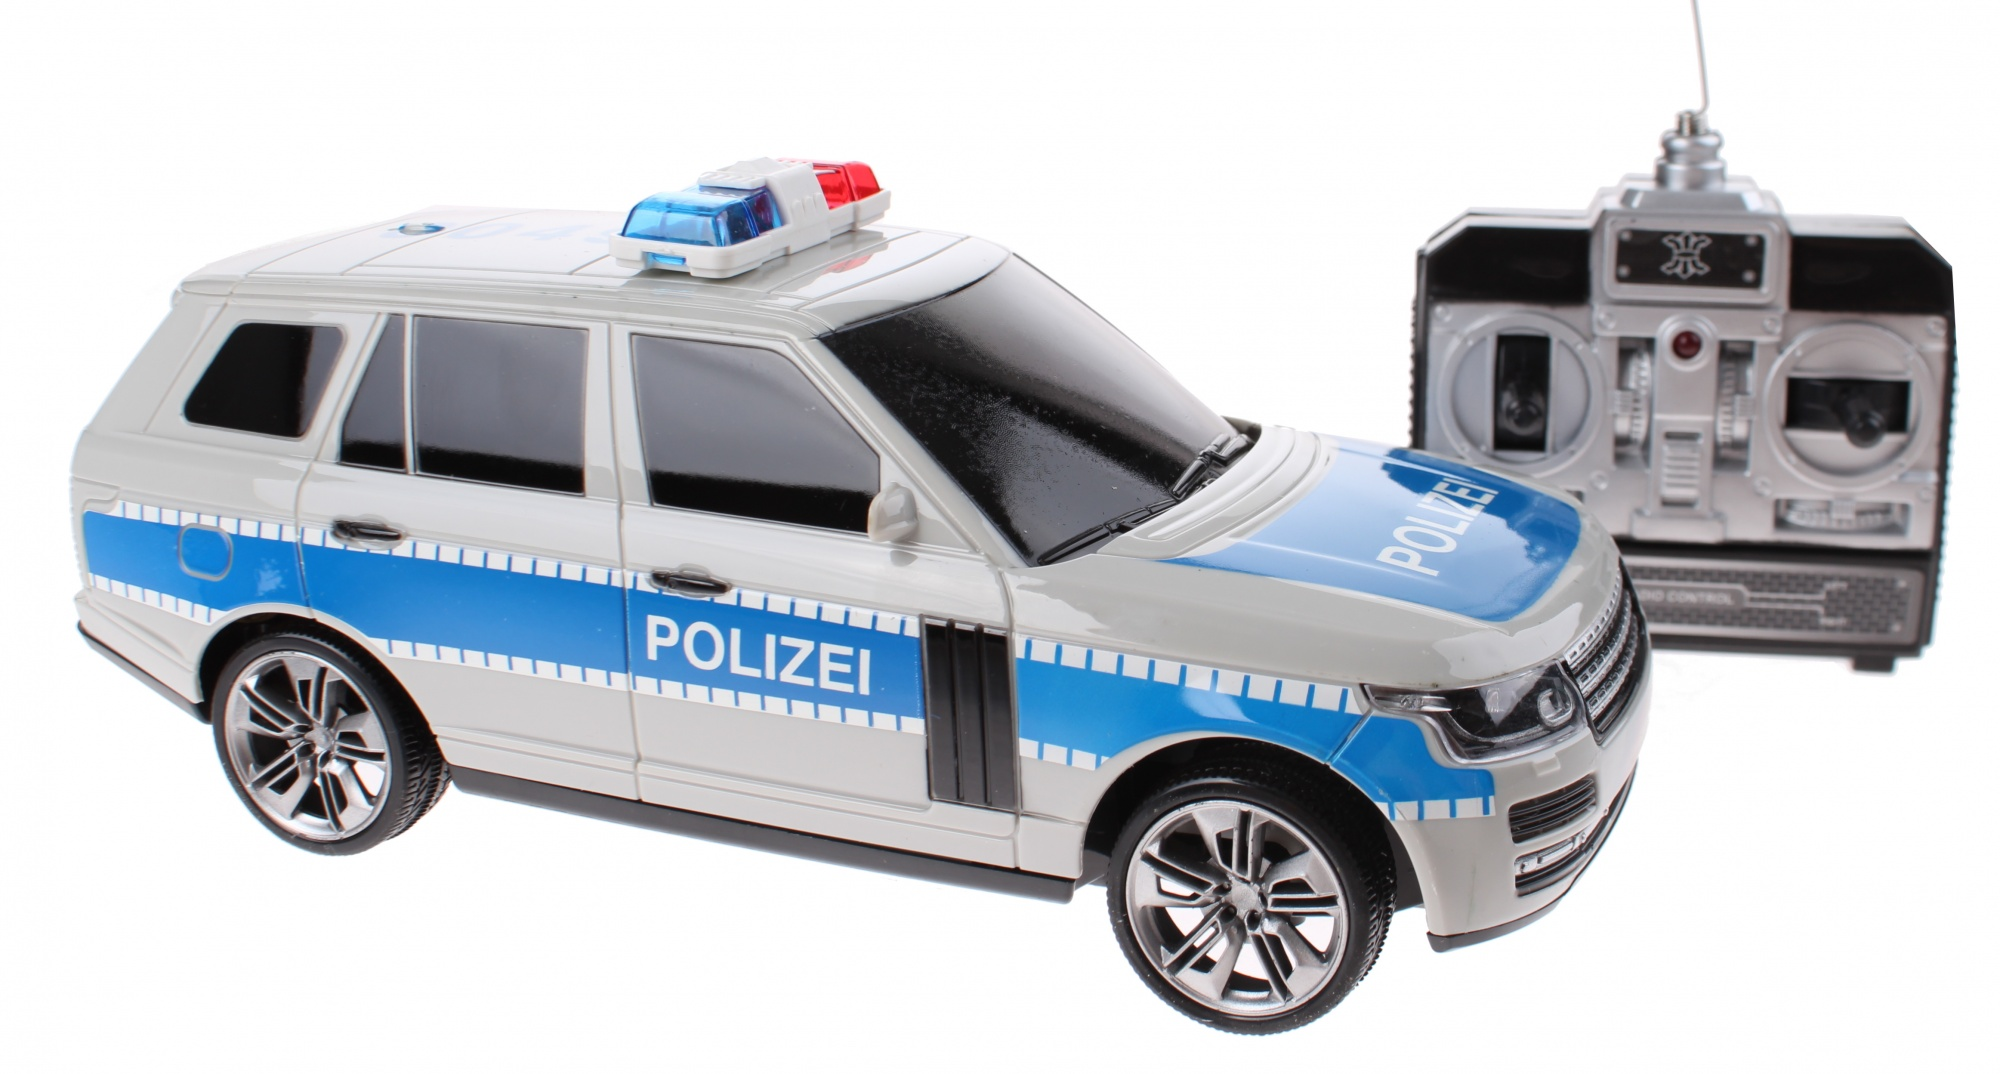 Peuter Buitenspeelgoed Toi-toys Rc Politieauto Duits 24 Cm - Internet-toys